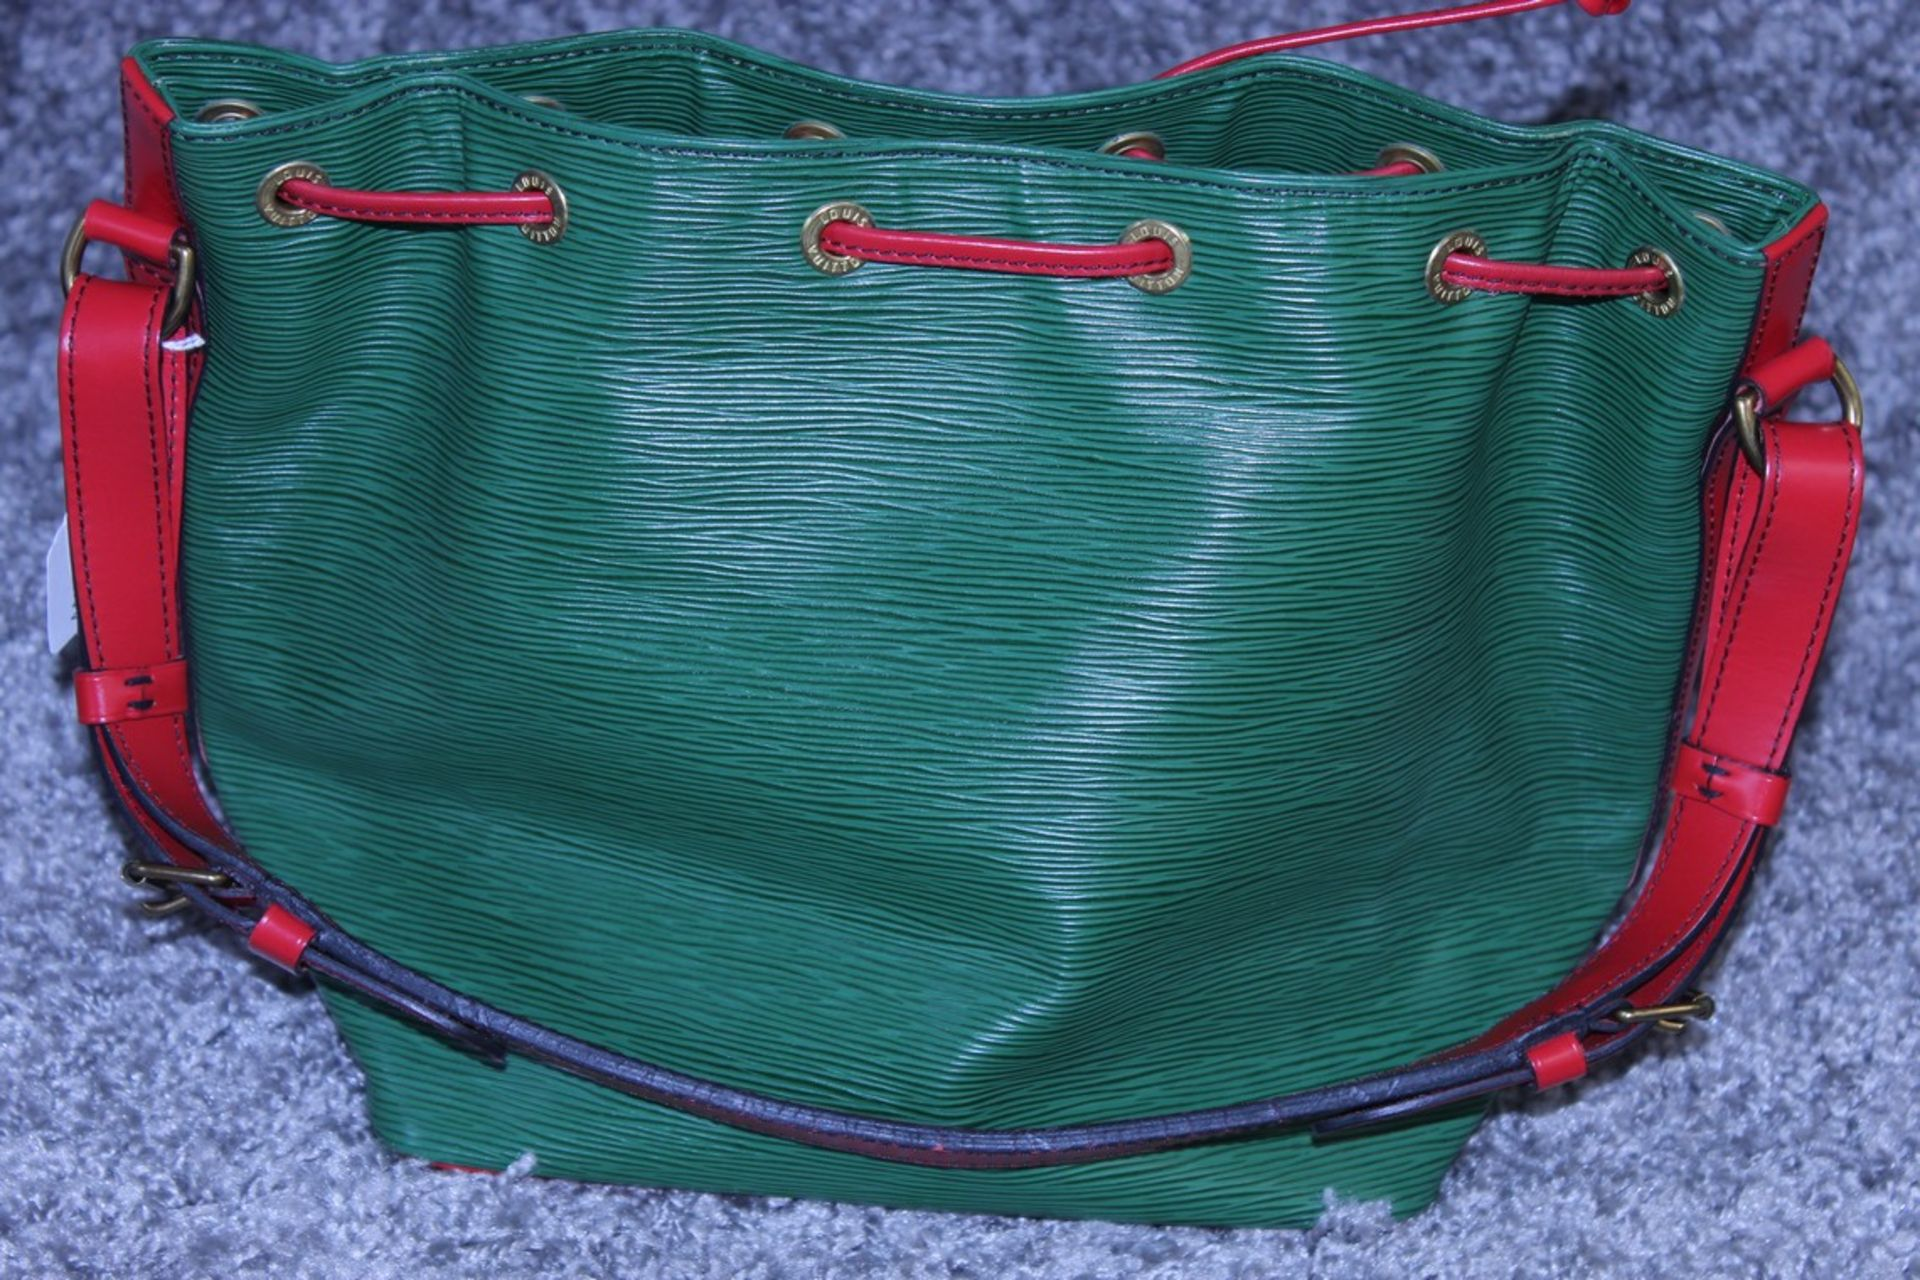 RRP £1200 Louis Vuitton Noe Bicolour Black Stitching Shoulder Bag In Green/Red Epi Calf Leather With - Image 2 of 5